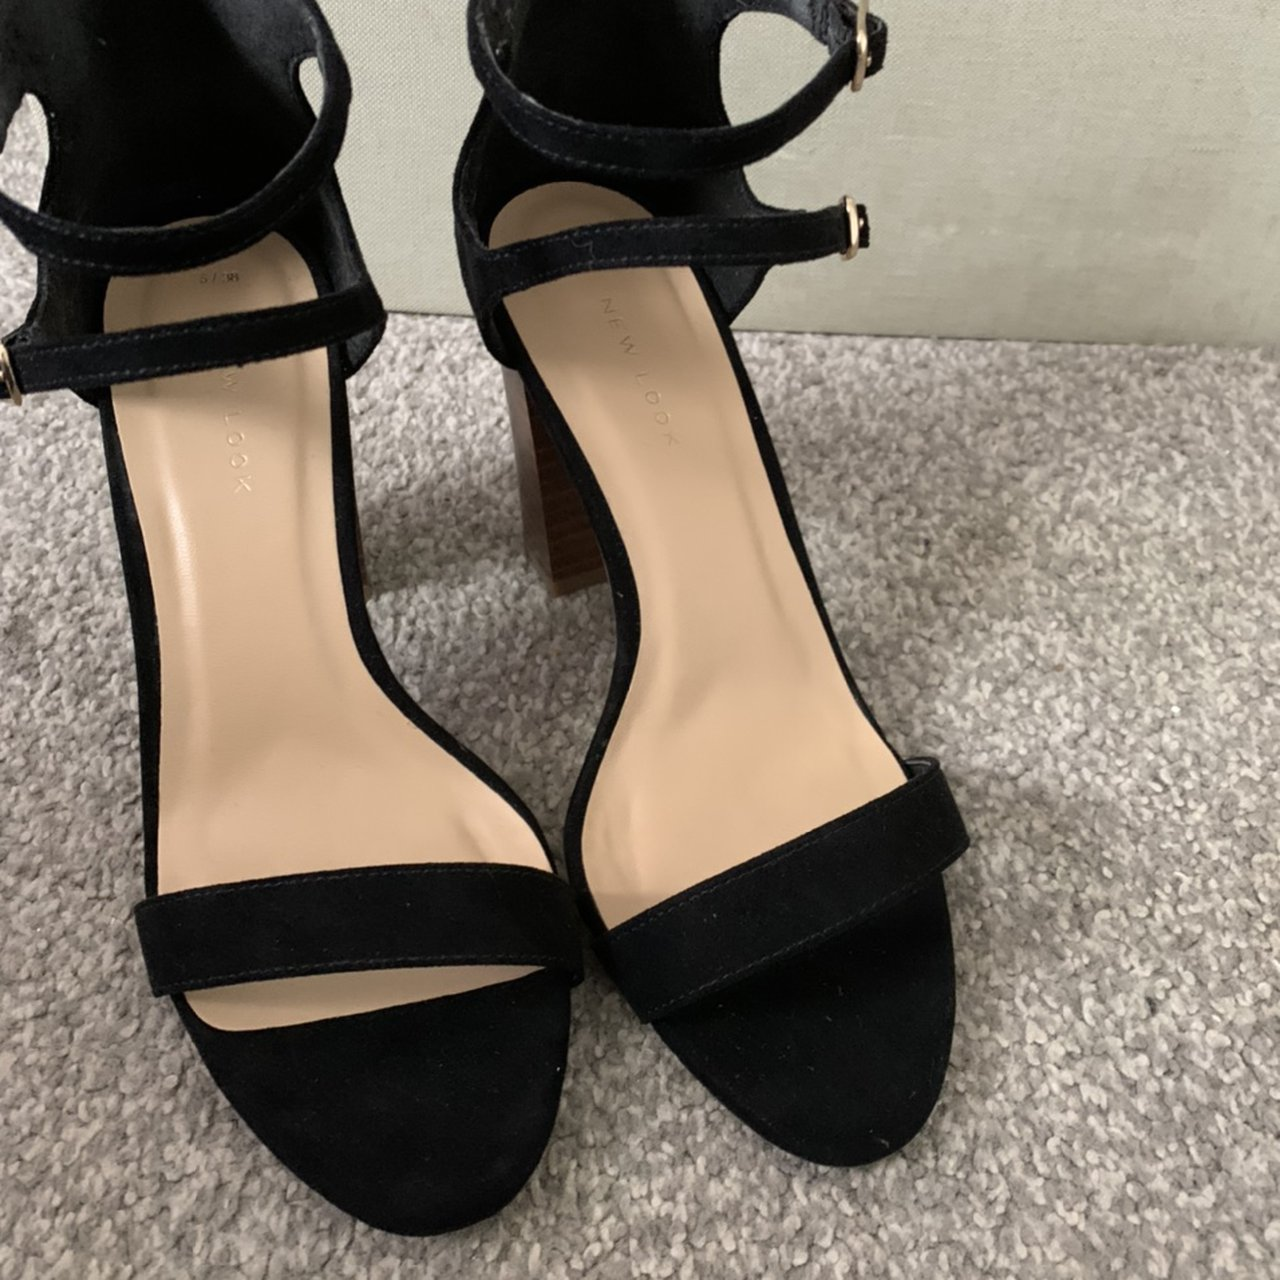 Heels - size 5 - new never worn - from